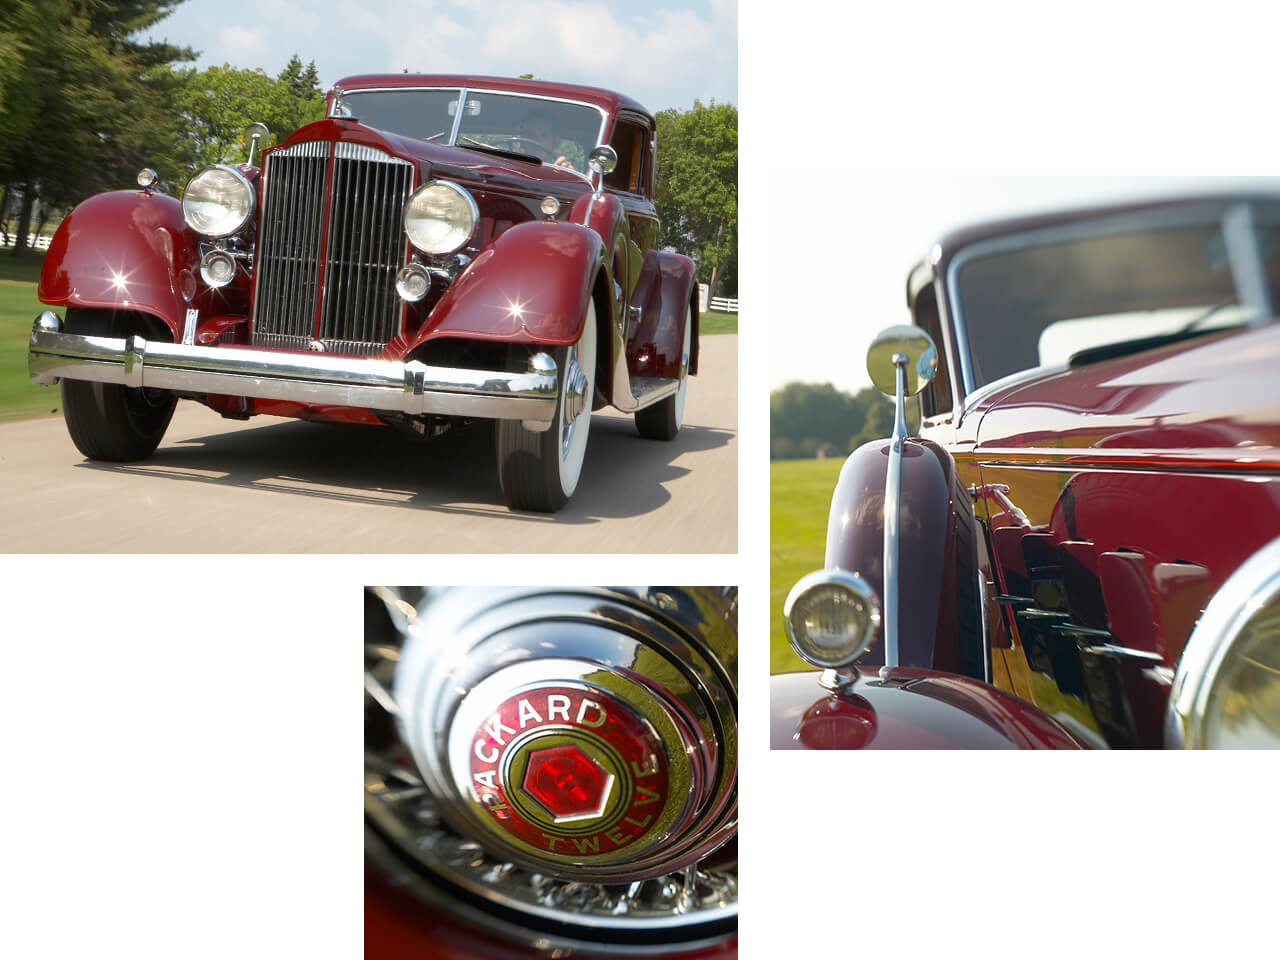 A red, 1934 Packard drives by on a bright and sunny day.